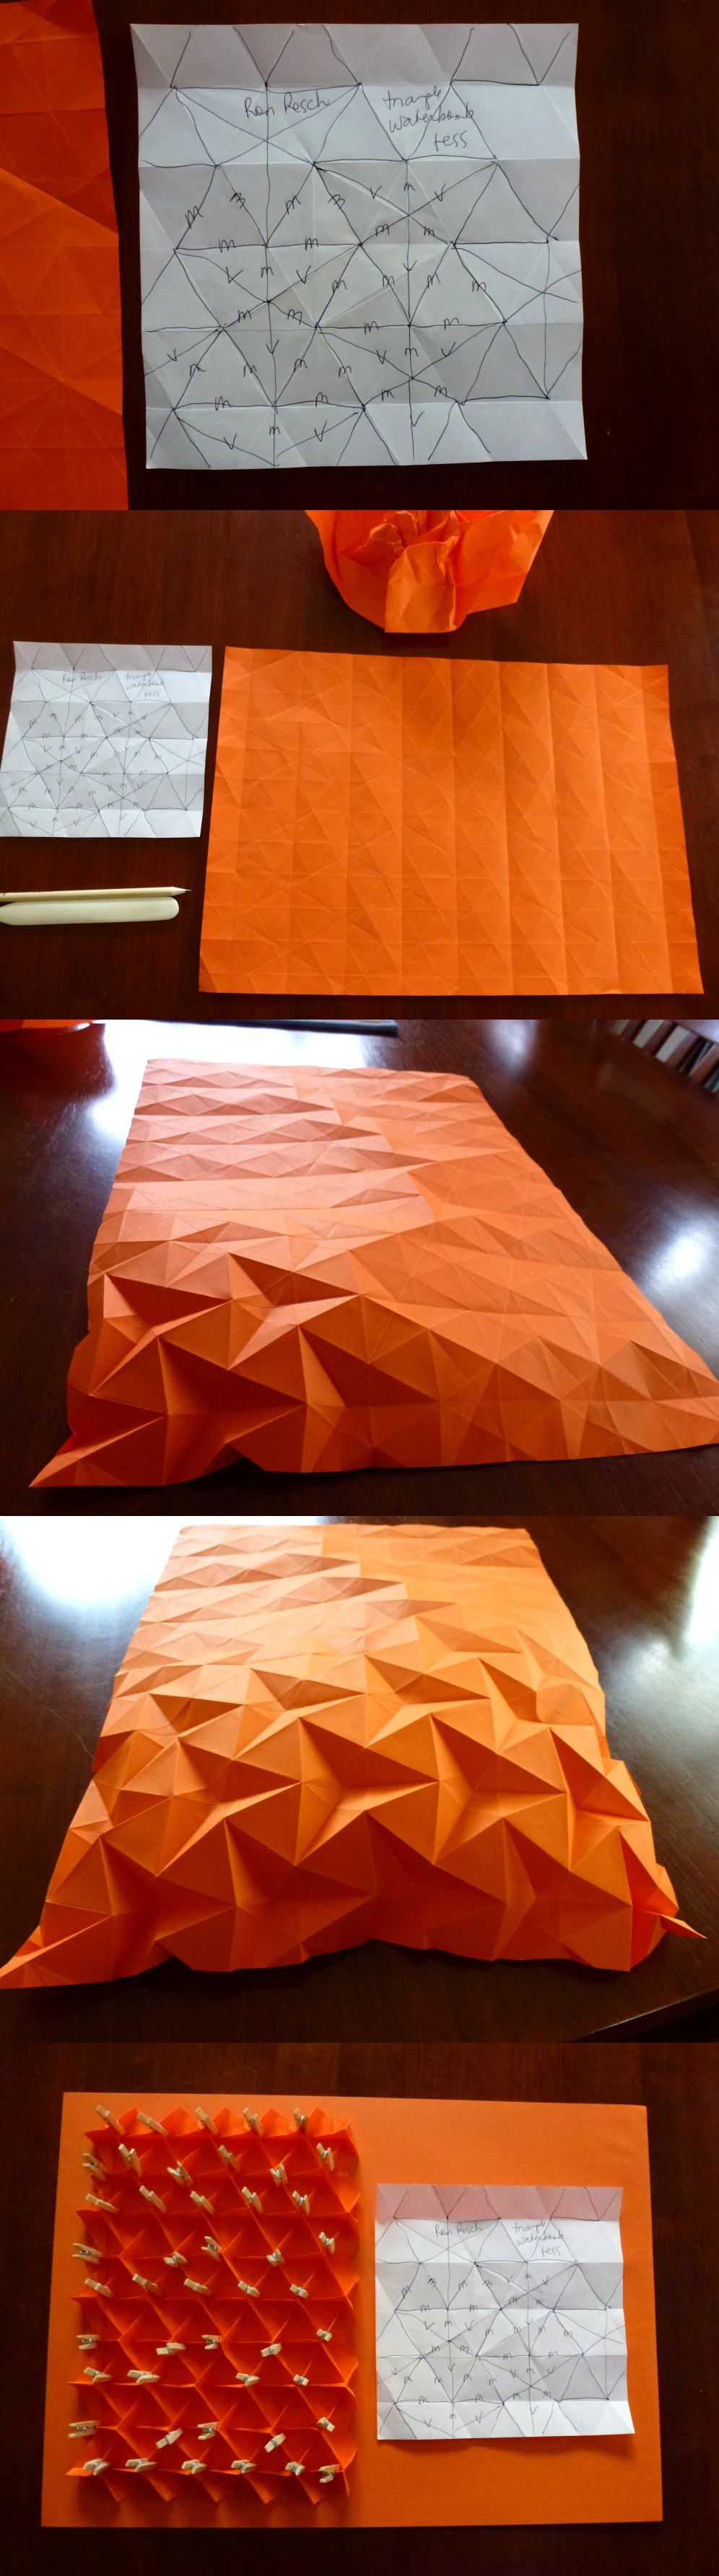 tessellation development